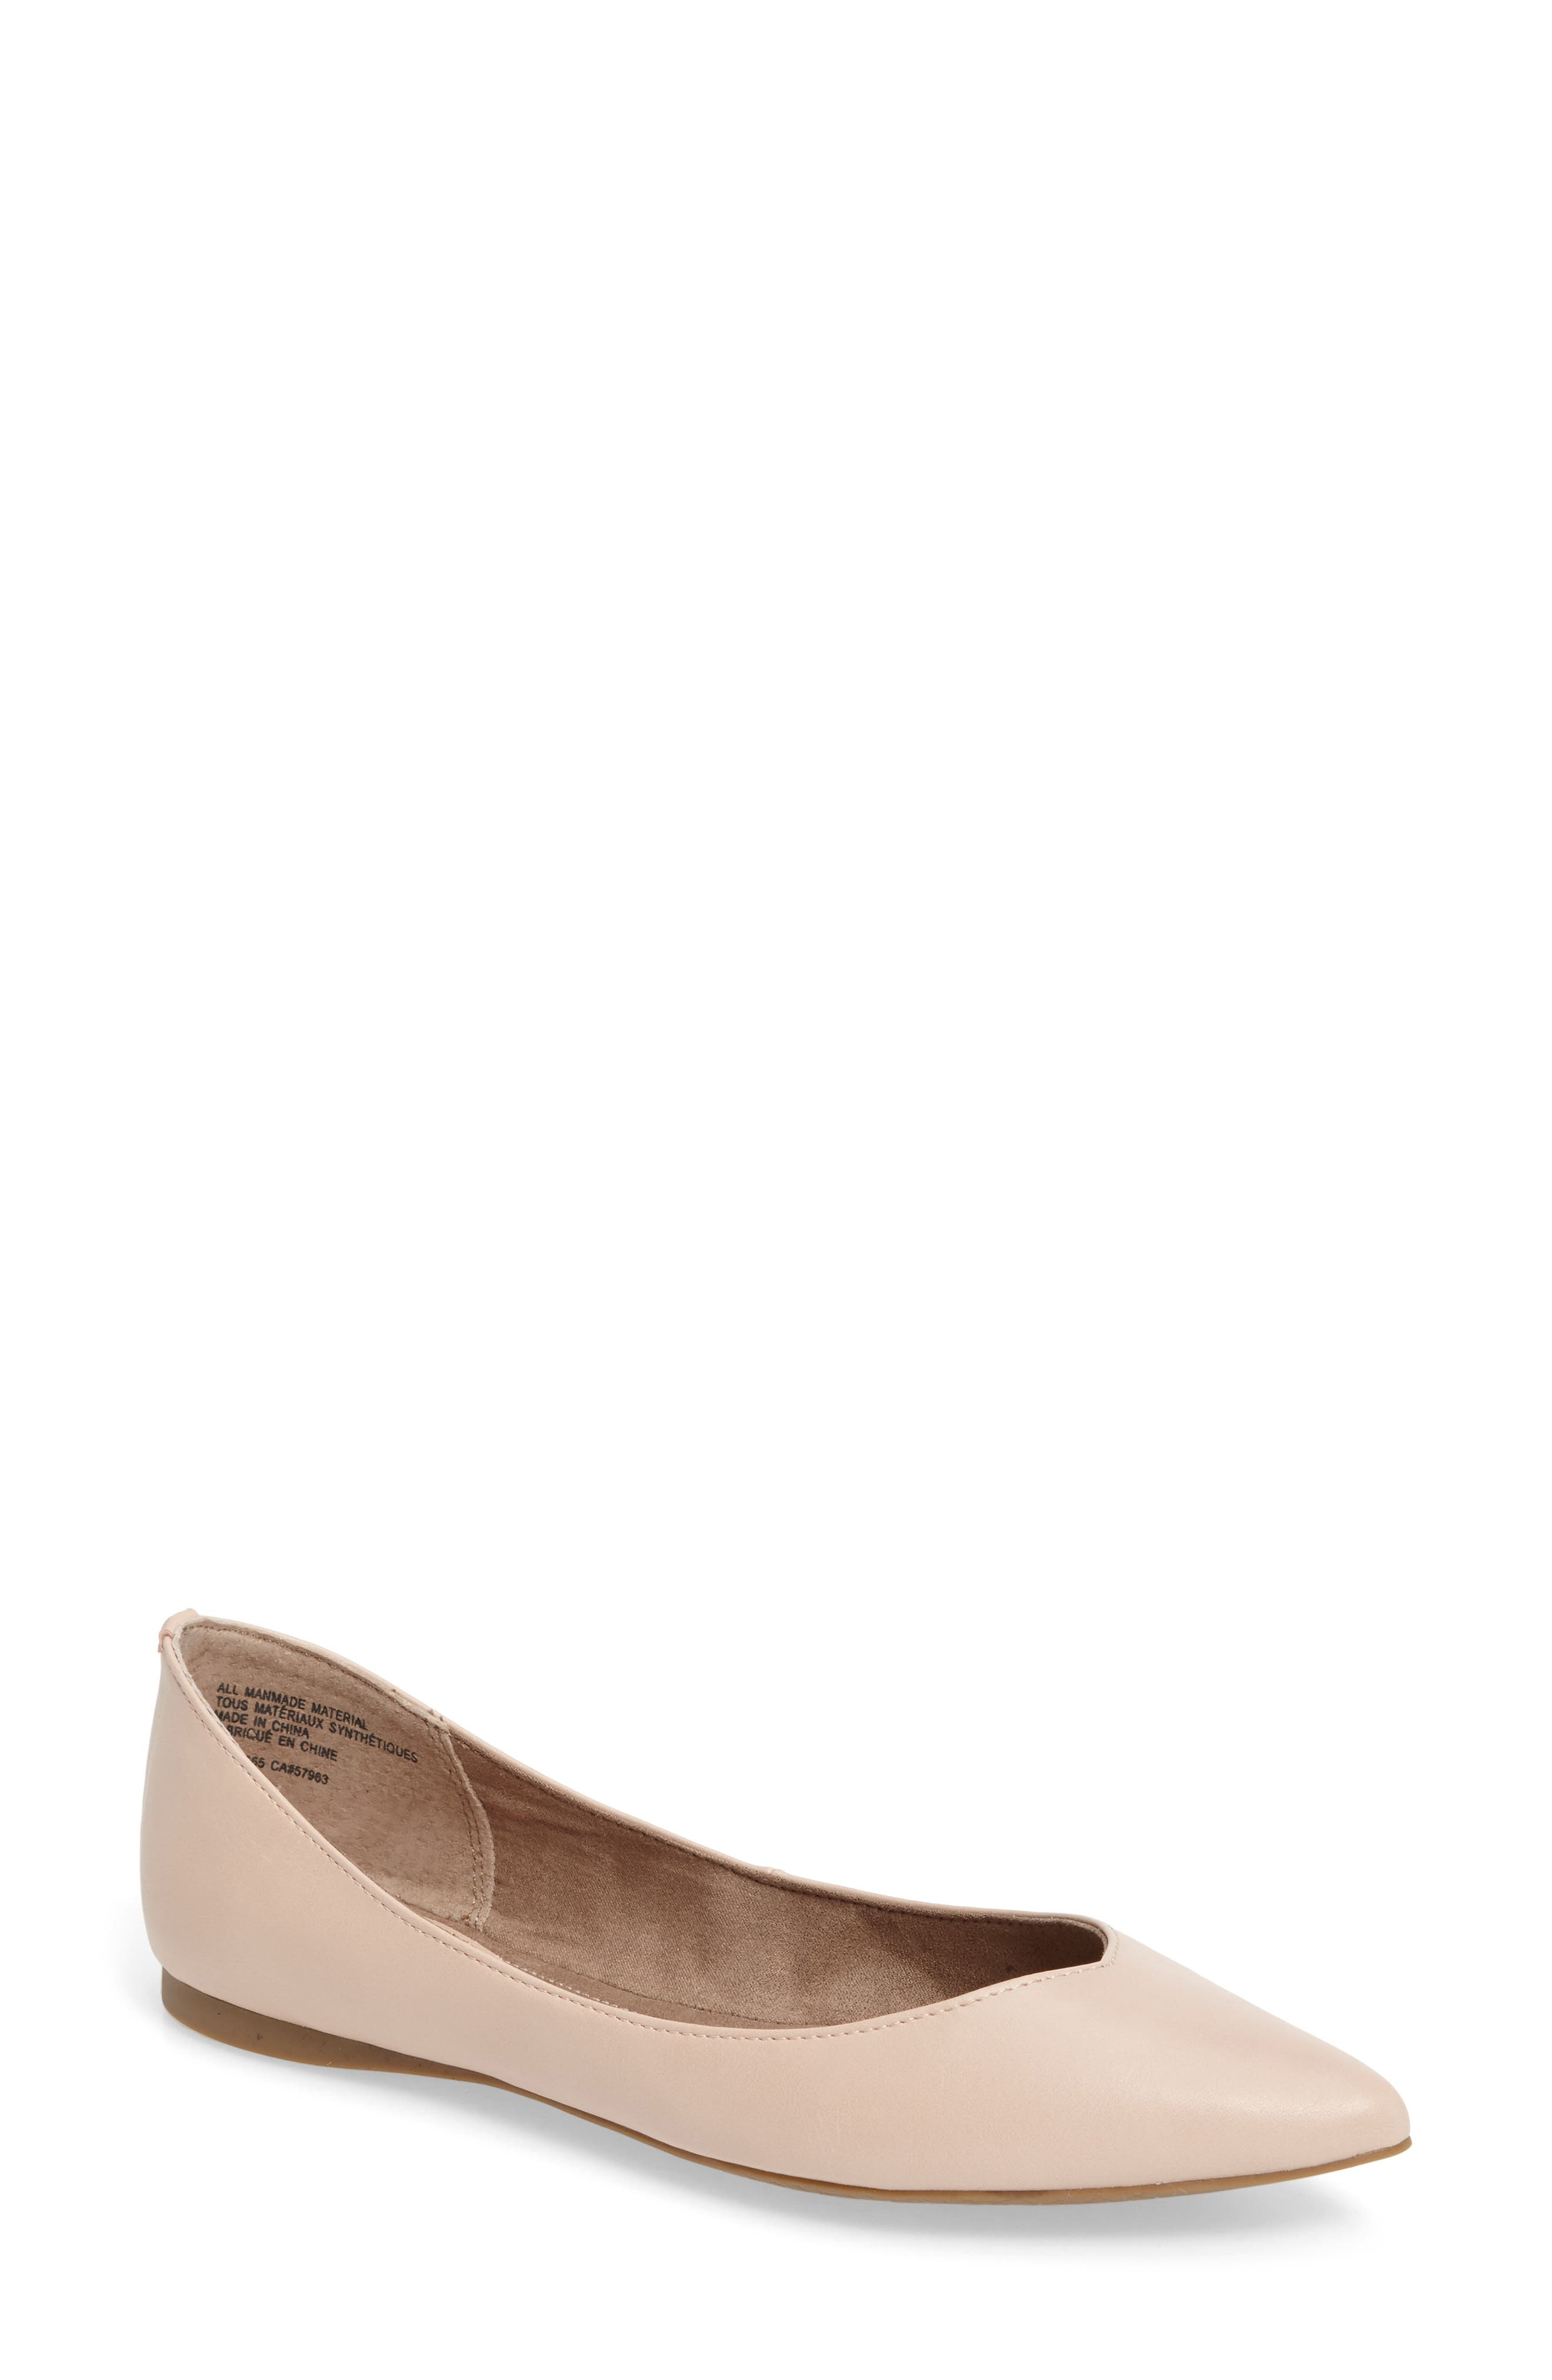 'Moveover' Pointy Toe Flat,                             Main thumbnail 1, color,                             Blush Faux Leather